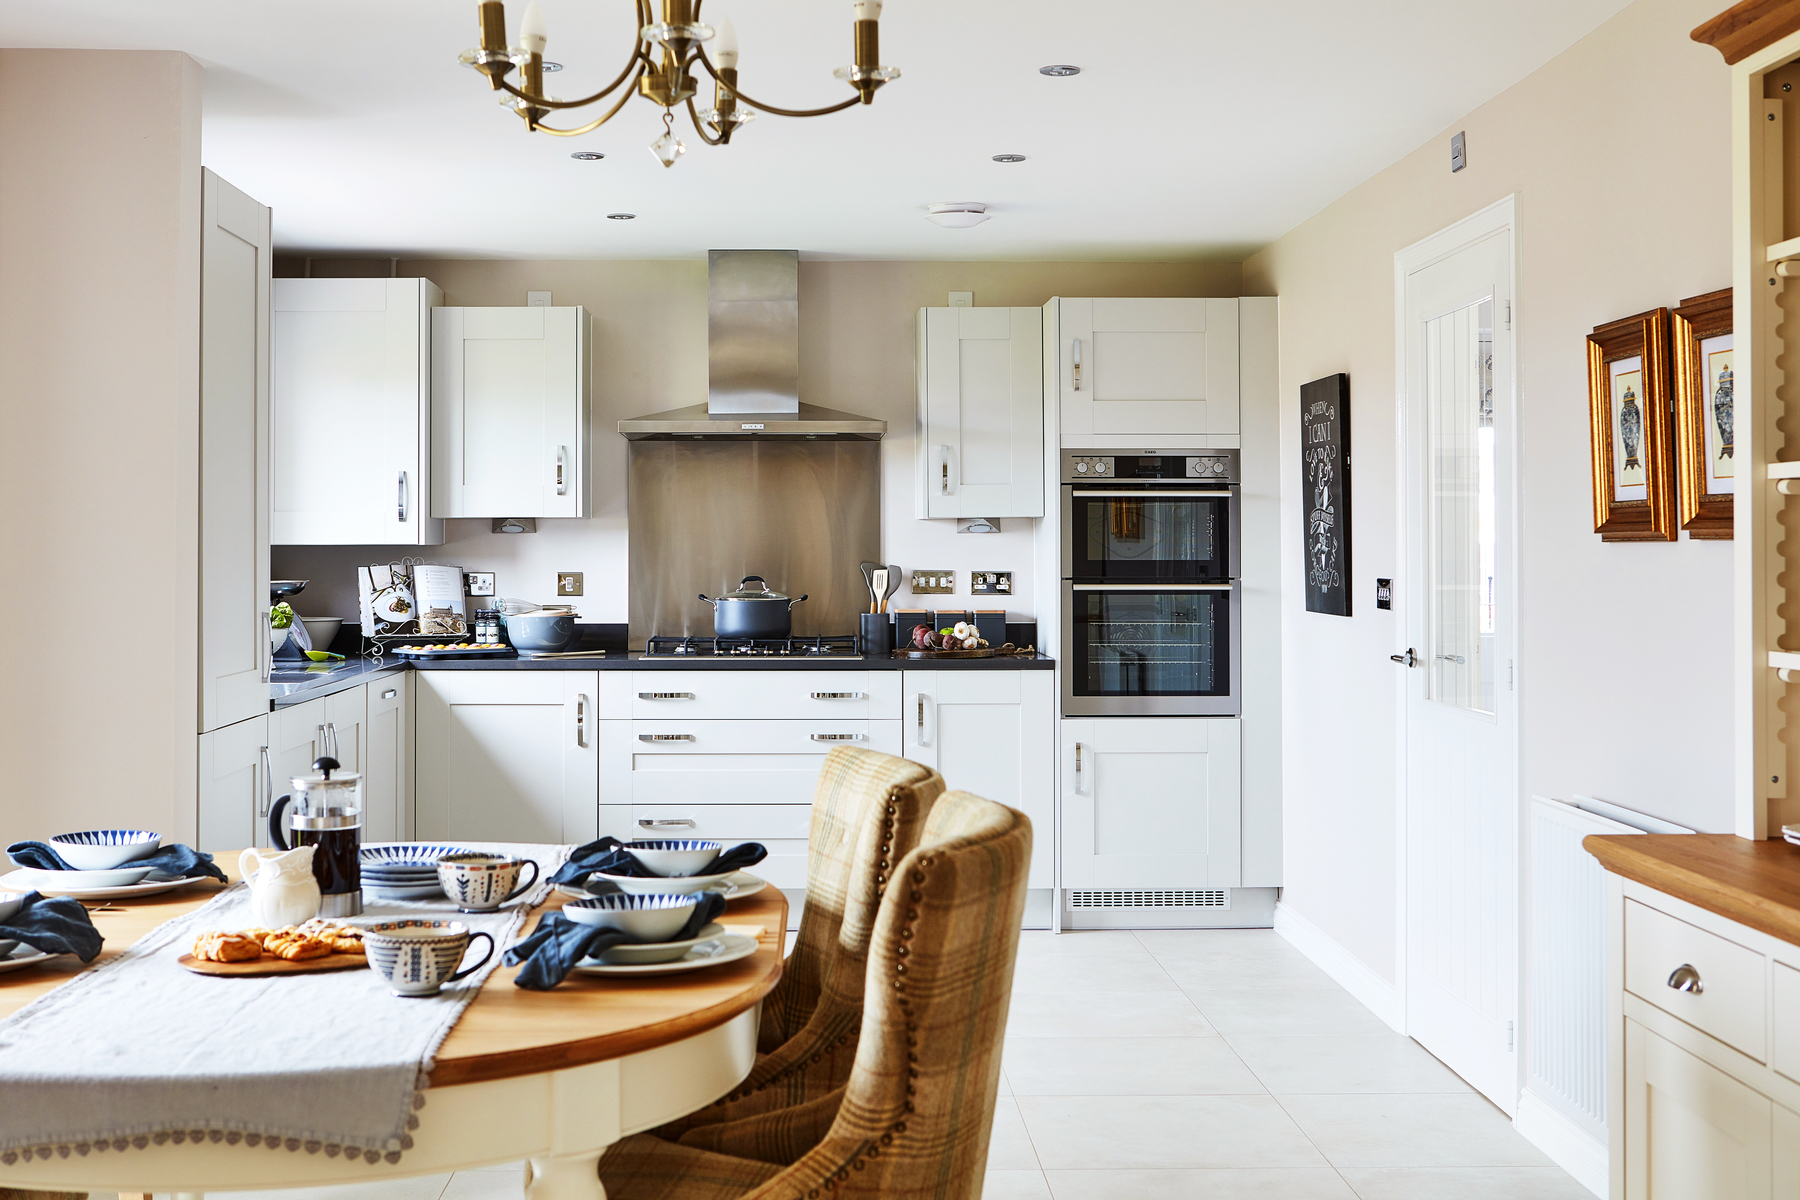 TW WMids_Langton Green_Polesworth Heydon_Kitchen RETOUCHED 6